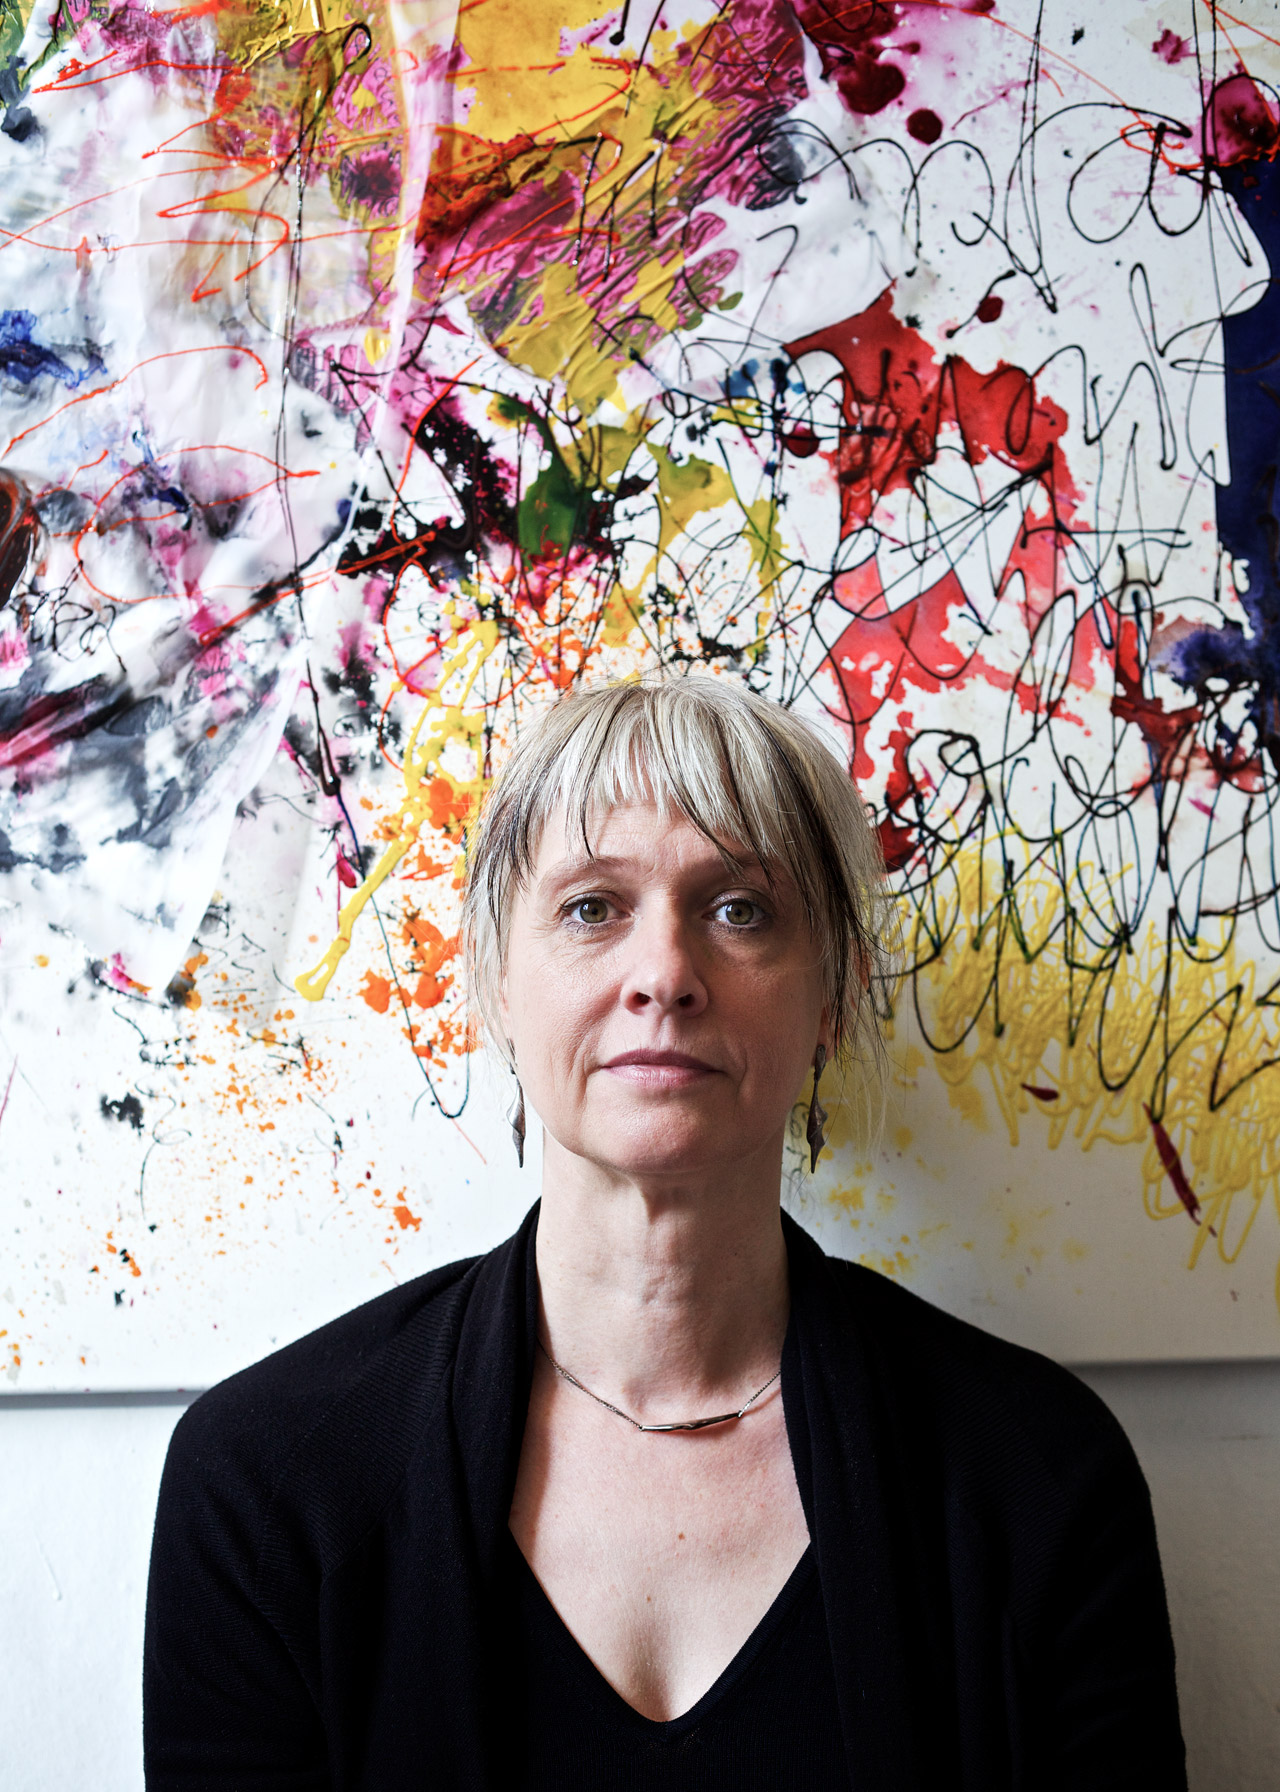 Anja Sieber, editor and artist, Berlin